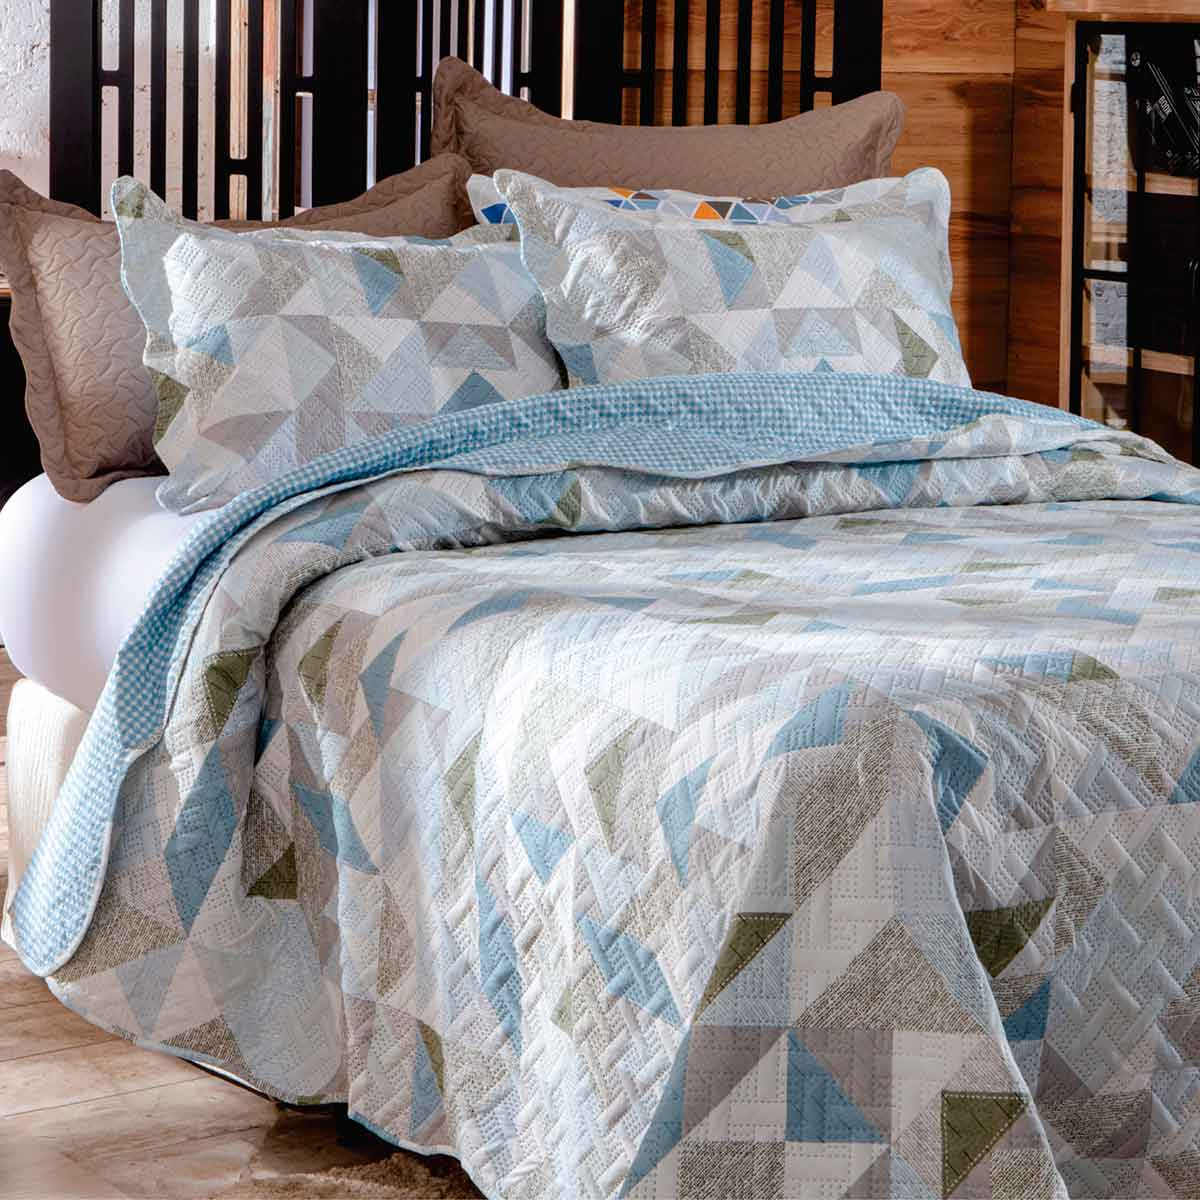 Cobreleito patchwork ultra solt 2pcs London Bristol 8